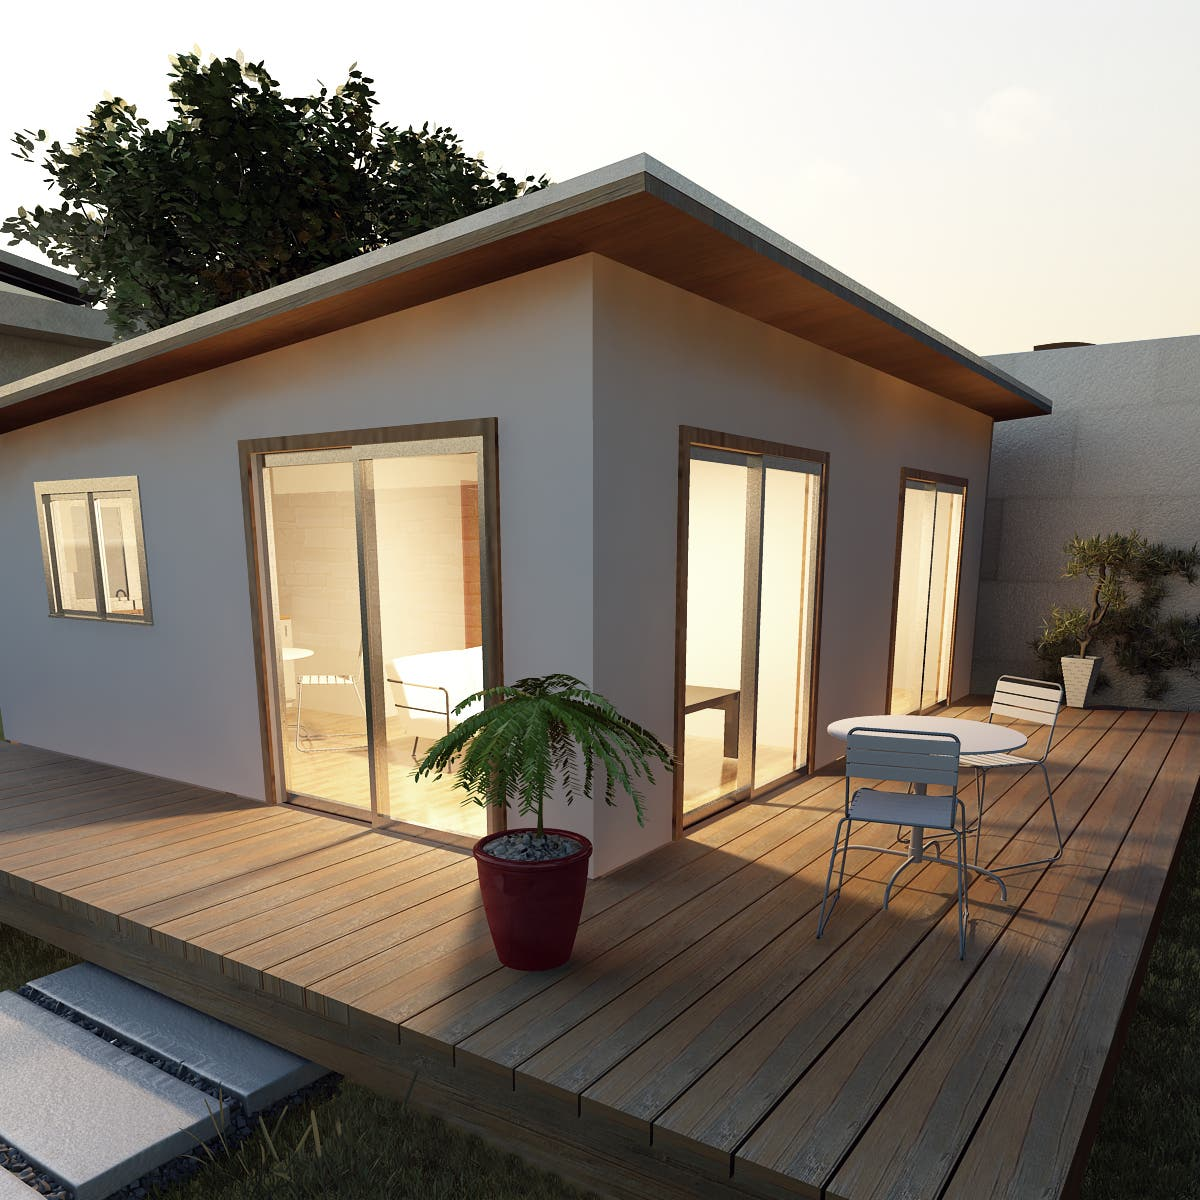 australian house plans tiny house design ideas - Tiny House Layout Ideas